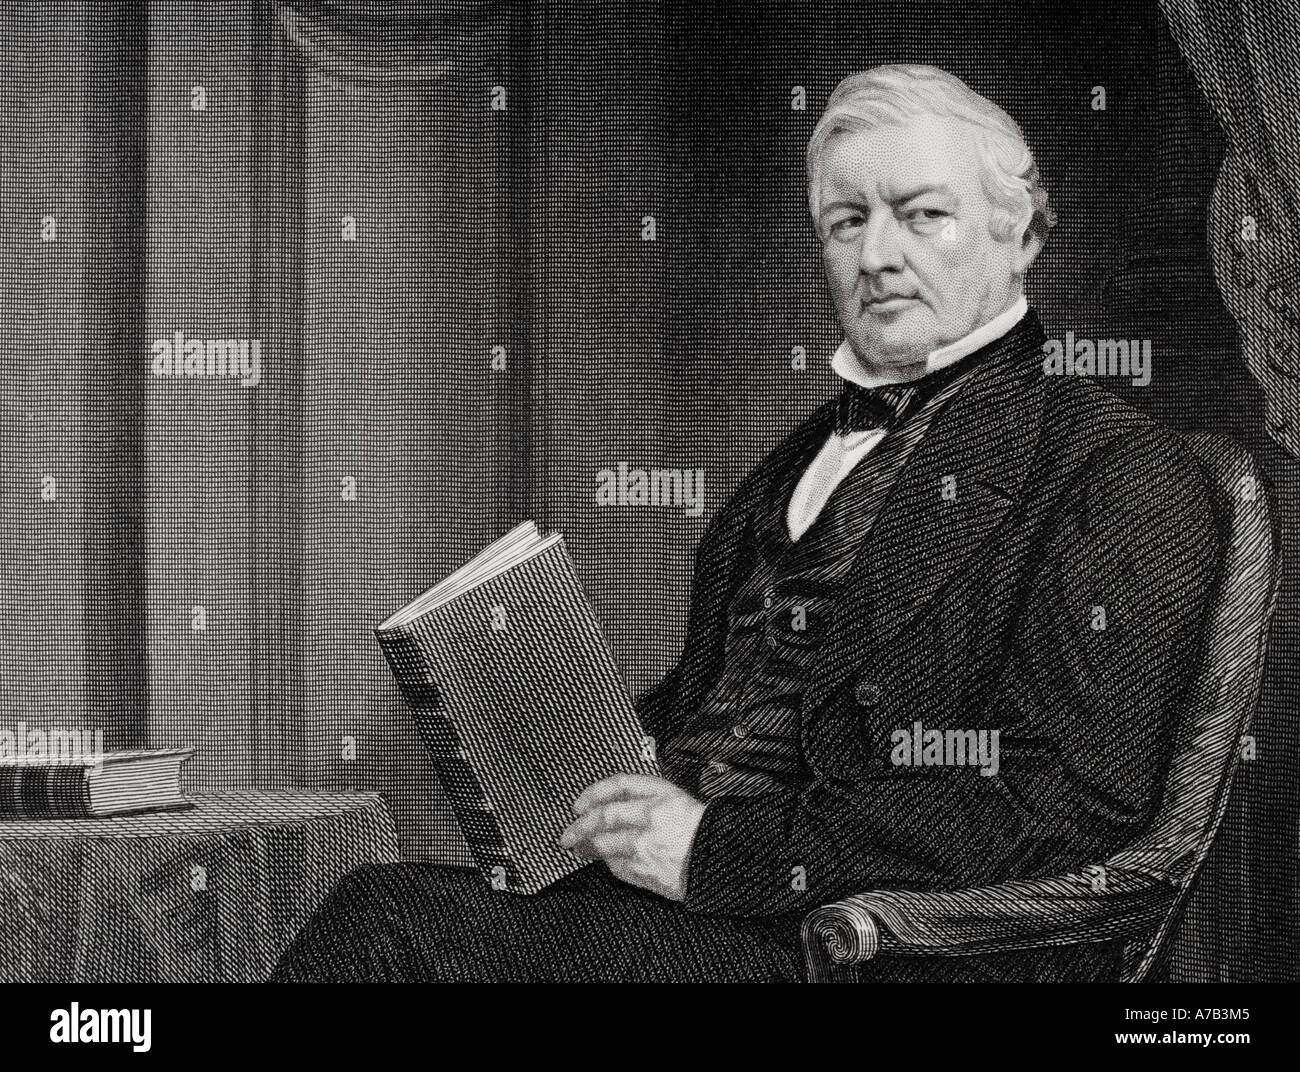 Millard Fillmore, 1800 - 1874. 13th president of the United States of America.  From a painting by Alonzo Chappel. Stock Photo